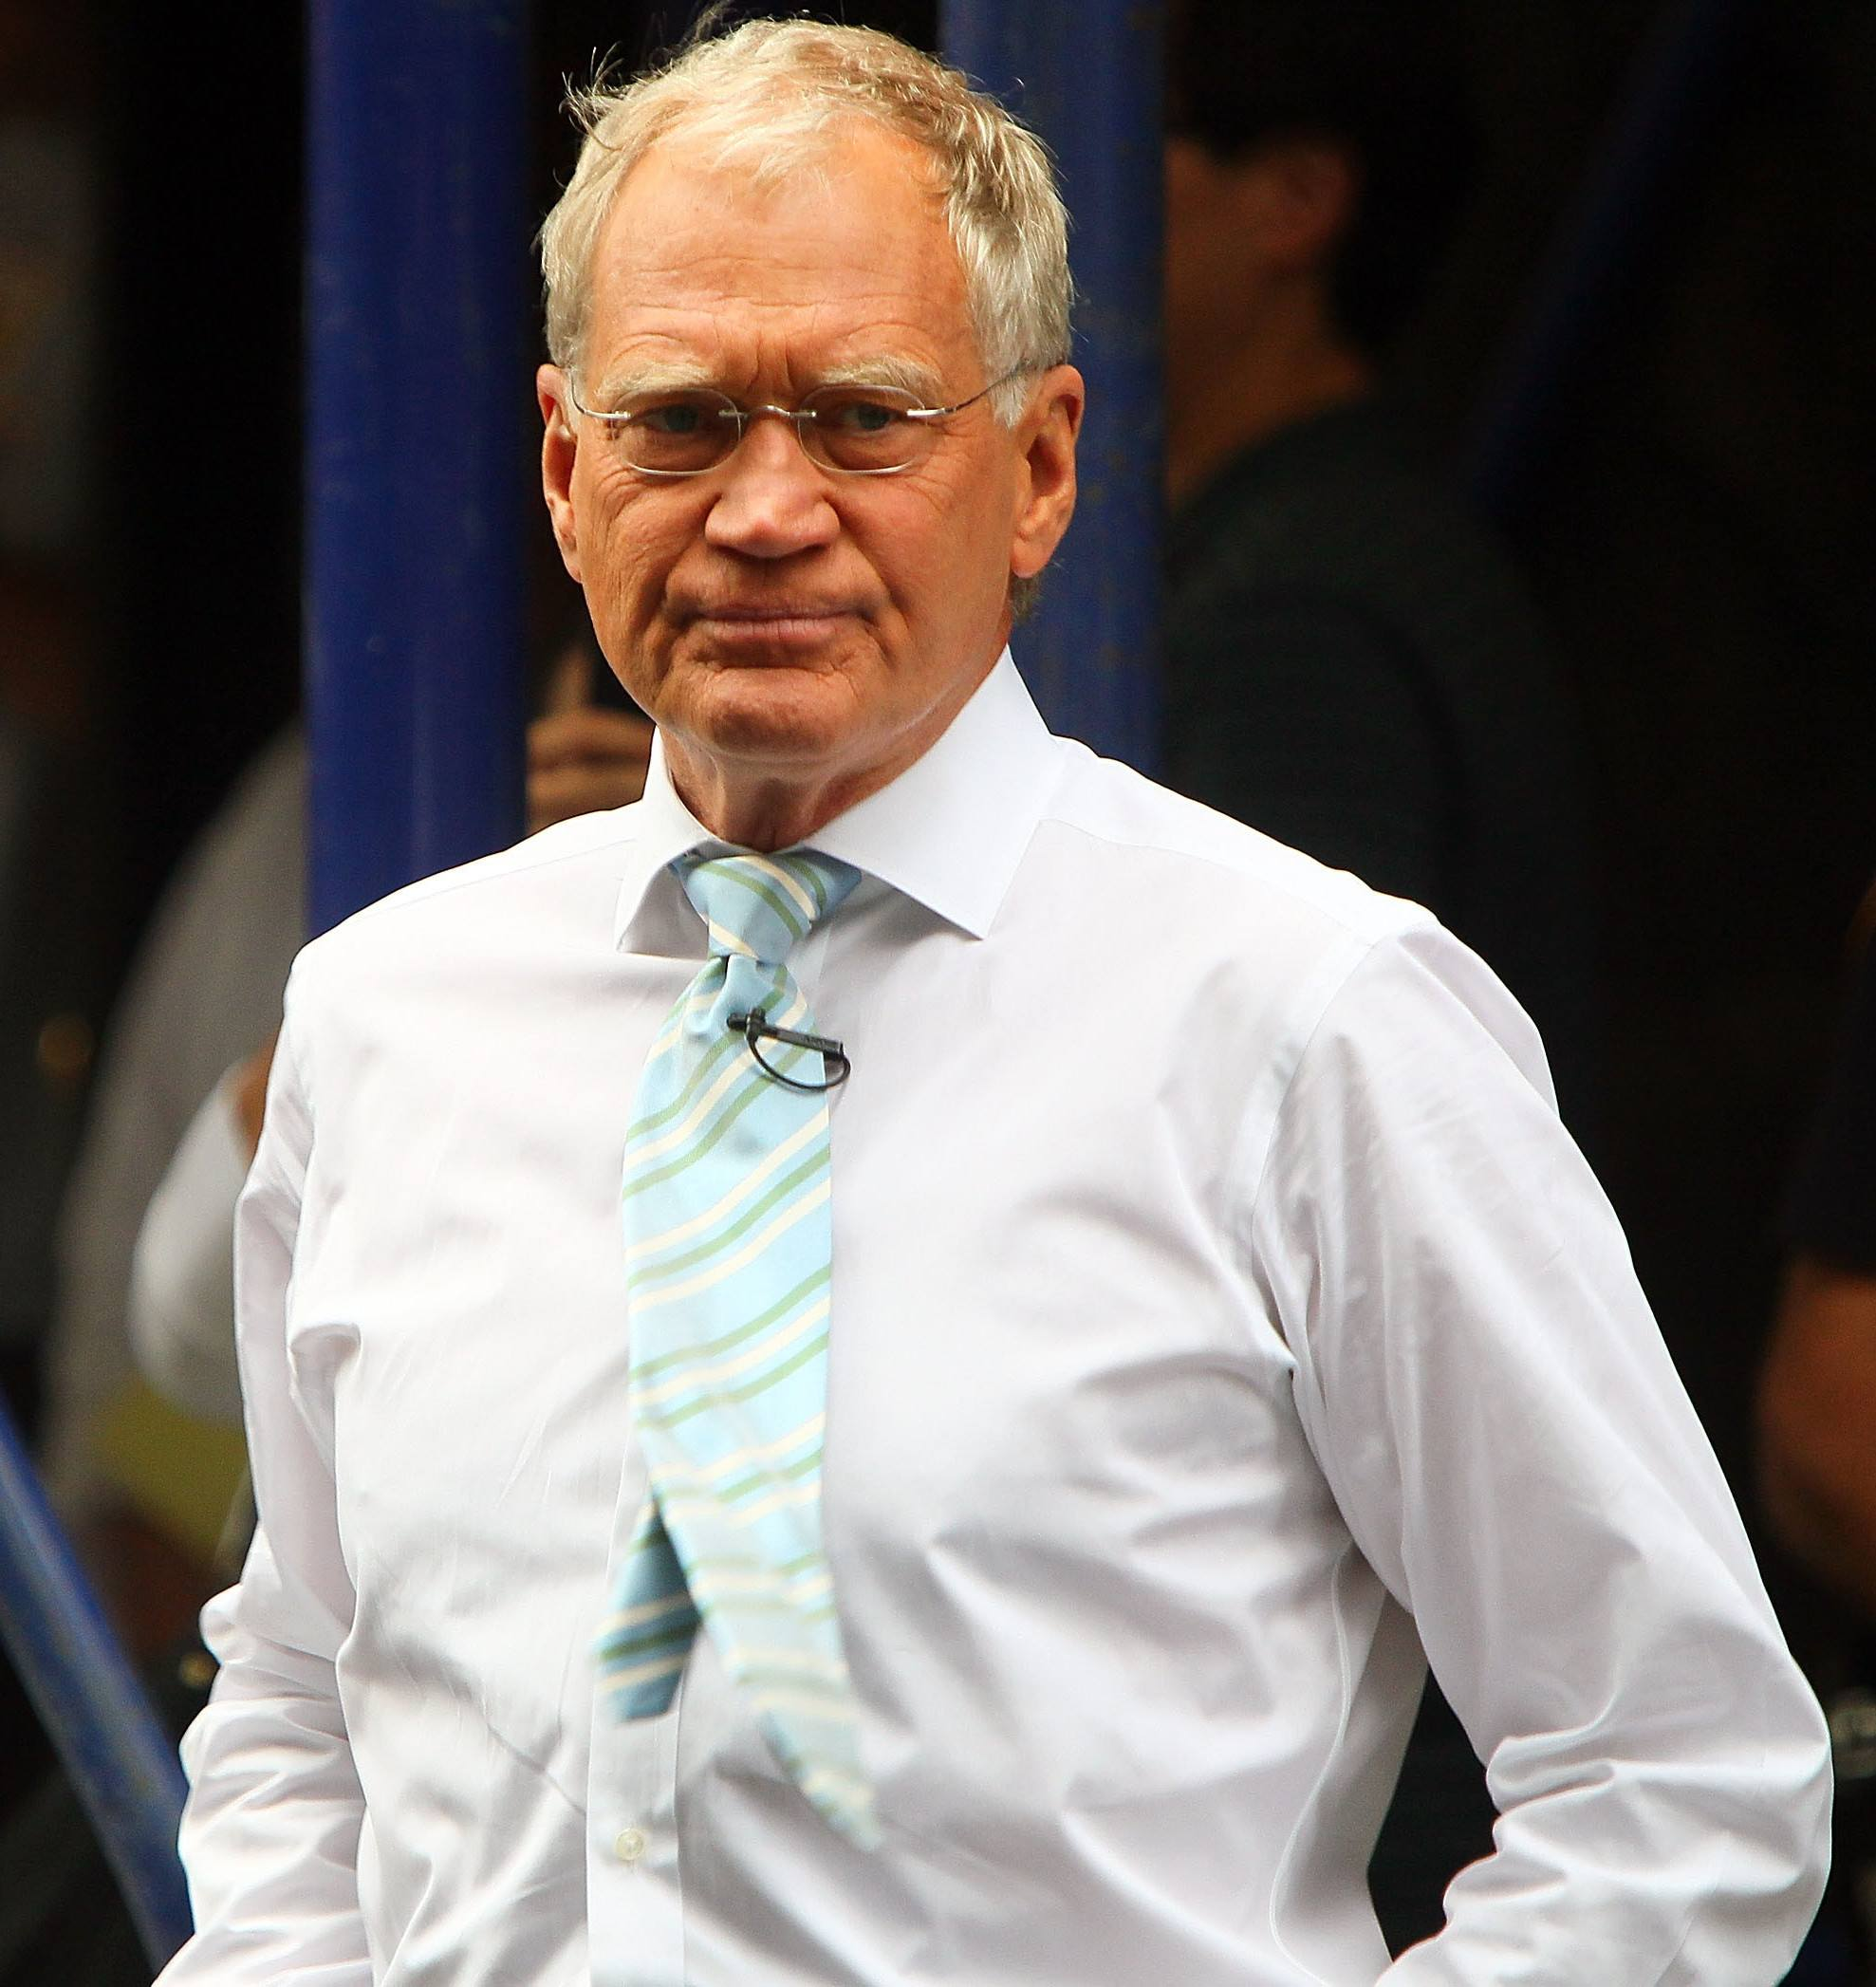 rs 183663 115999785 1 25 Things You Never Knew About David Letterman